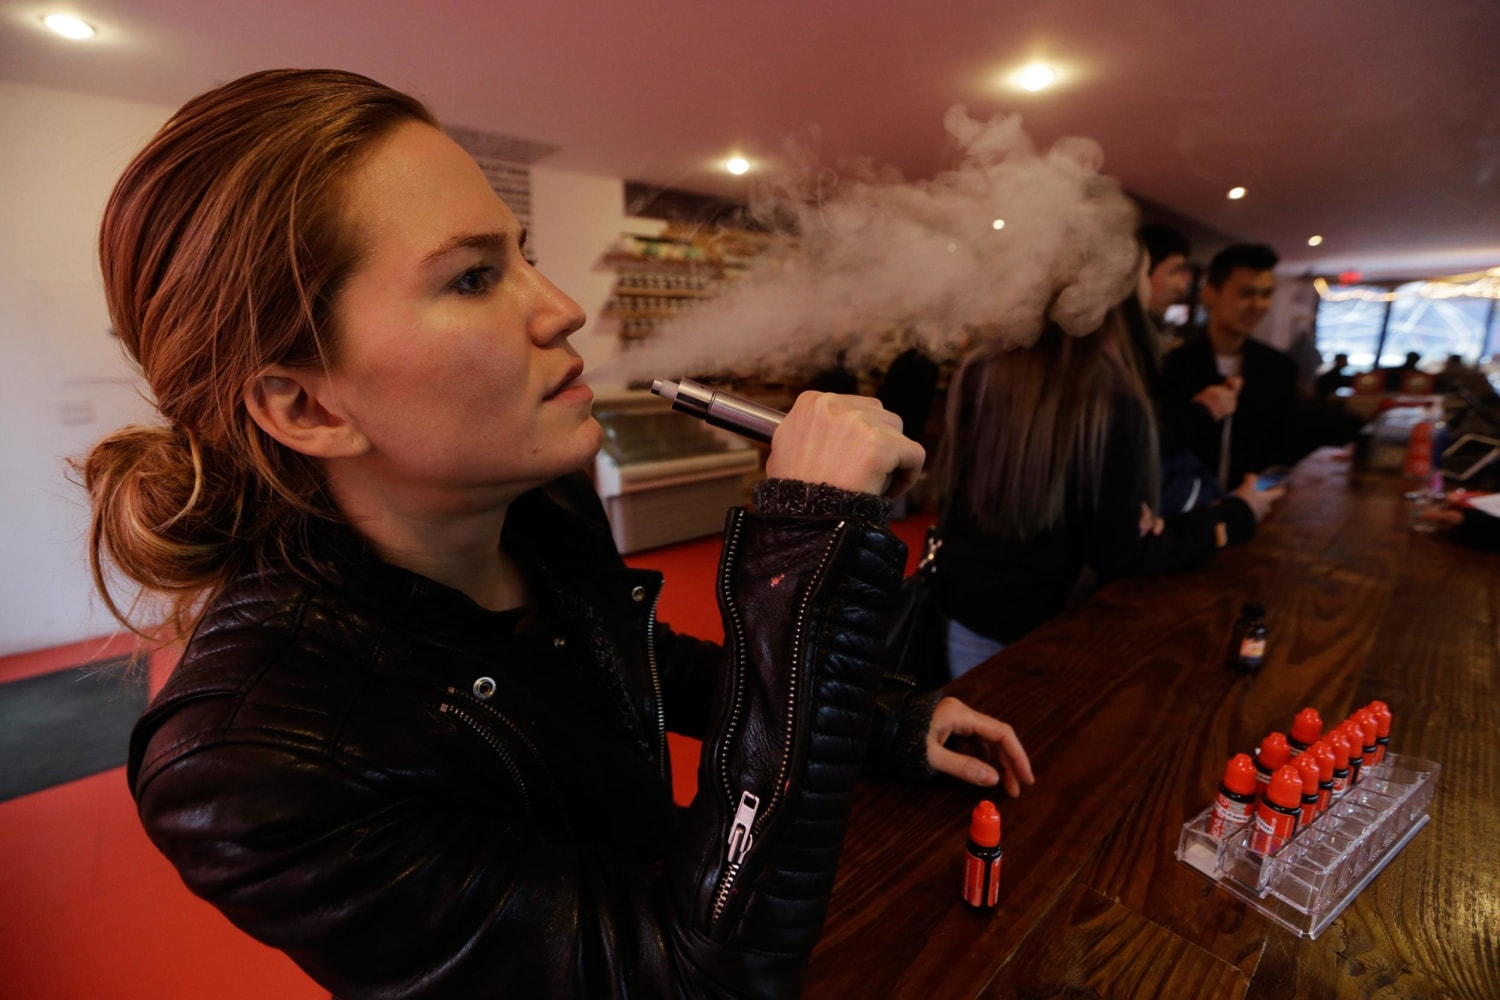 'Dripping' new trend among teens who vape, researchers say